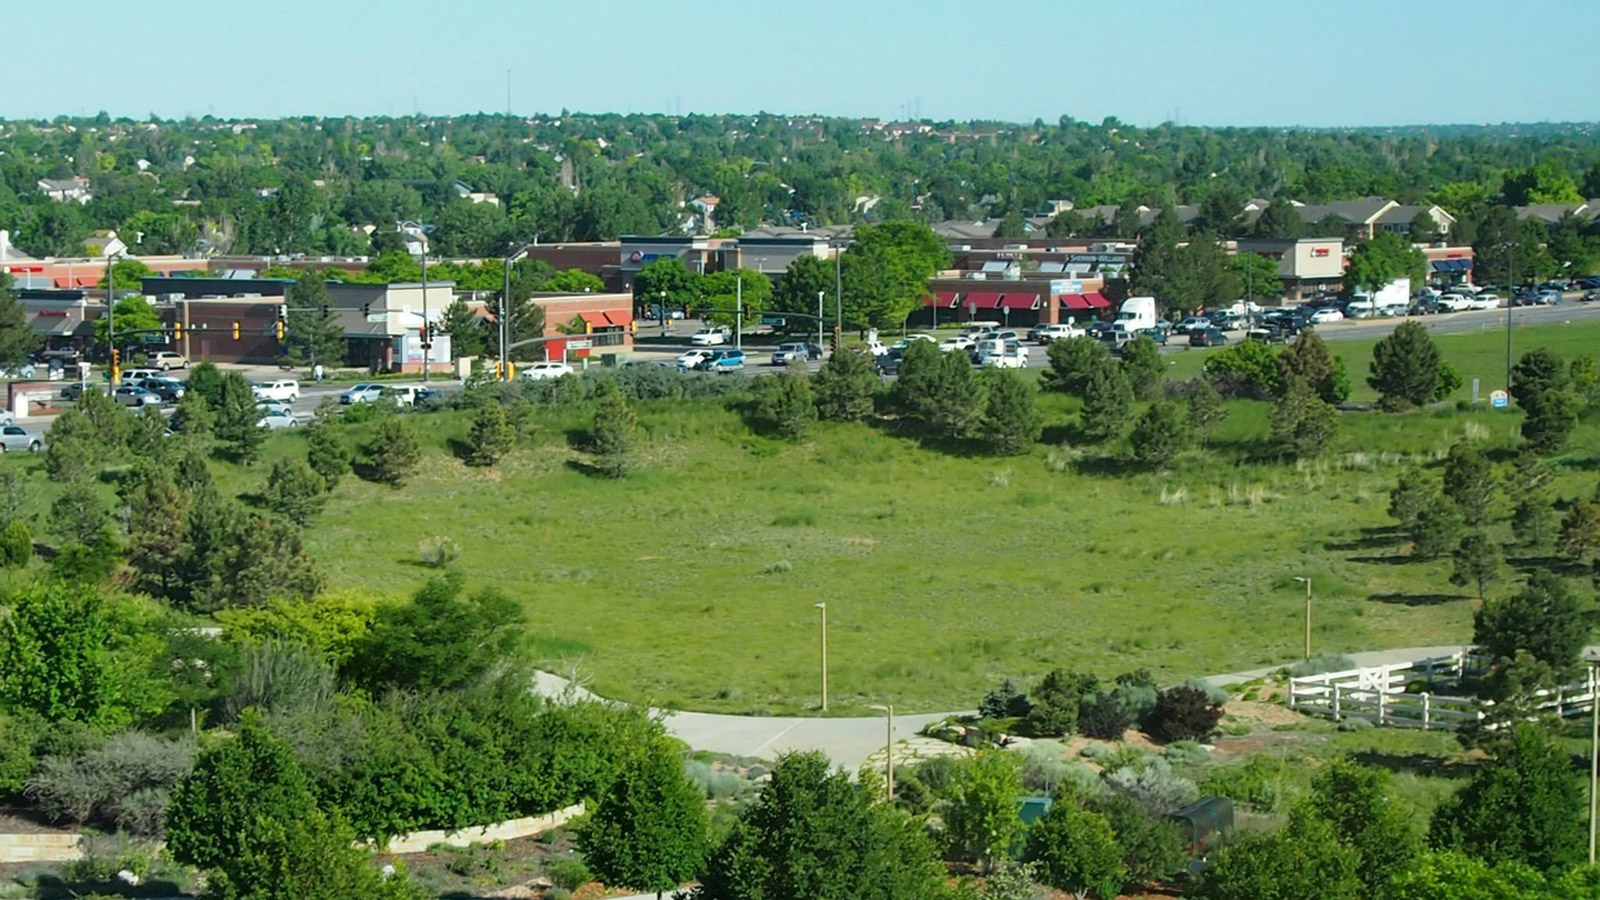 The land where the memorial would be placed (credit: City of Aurora)